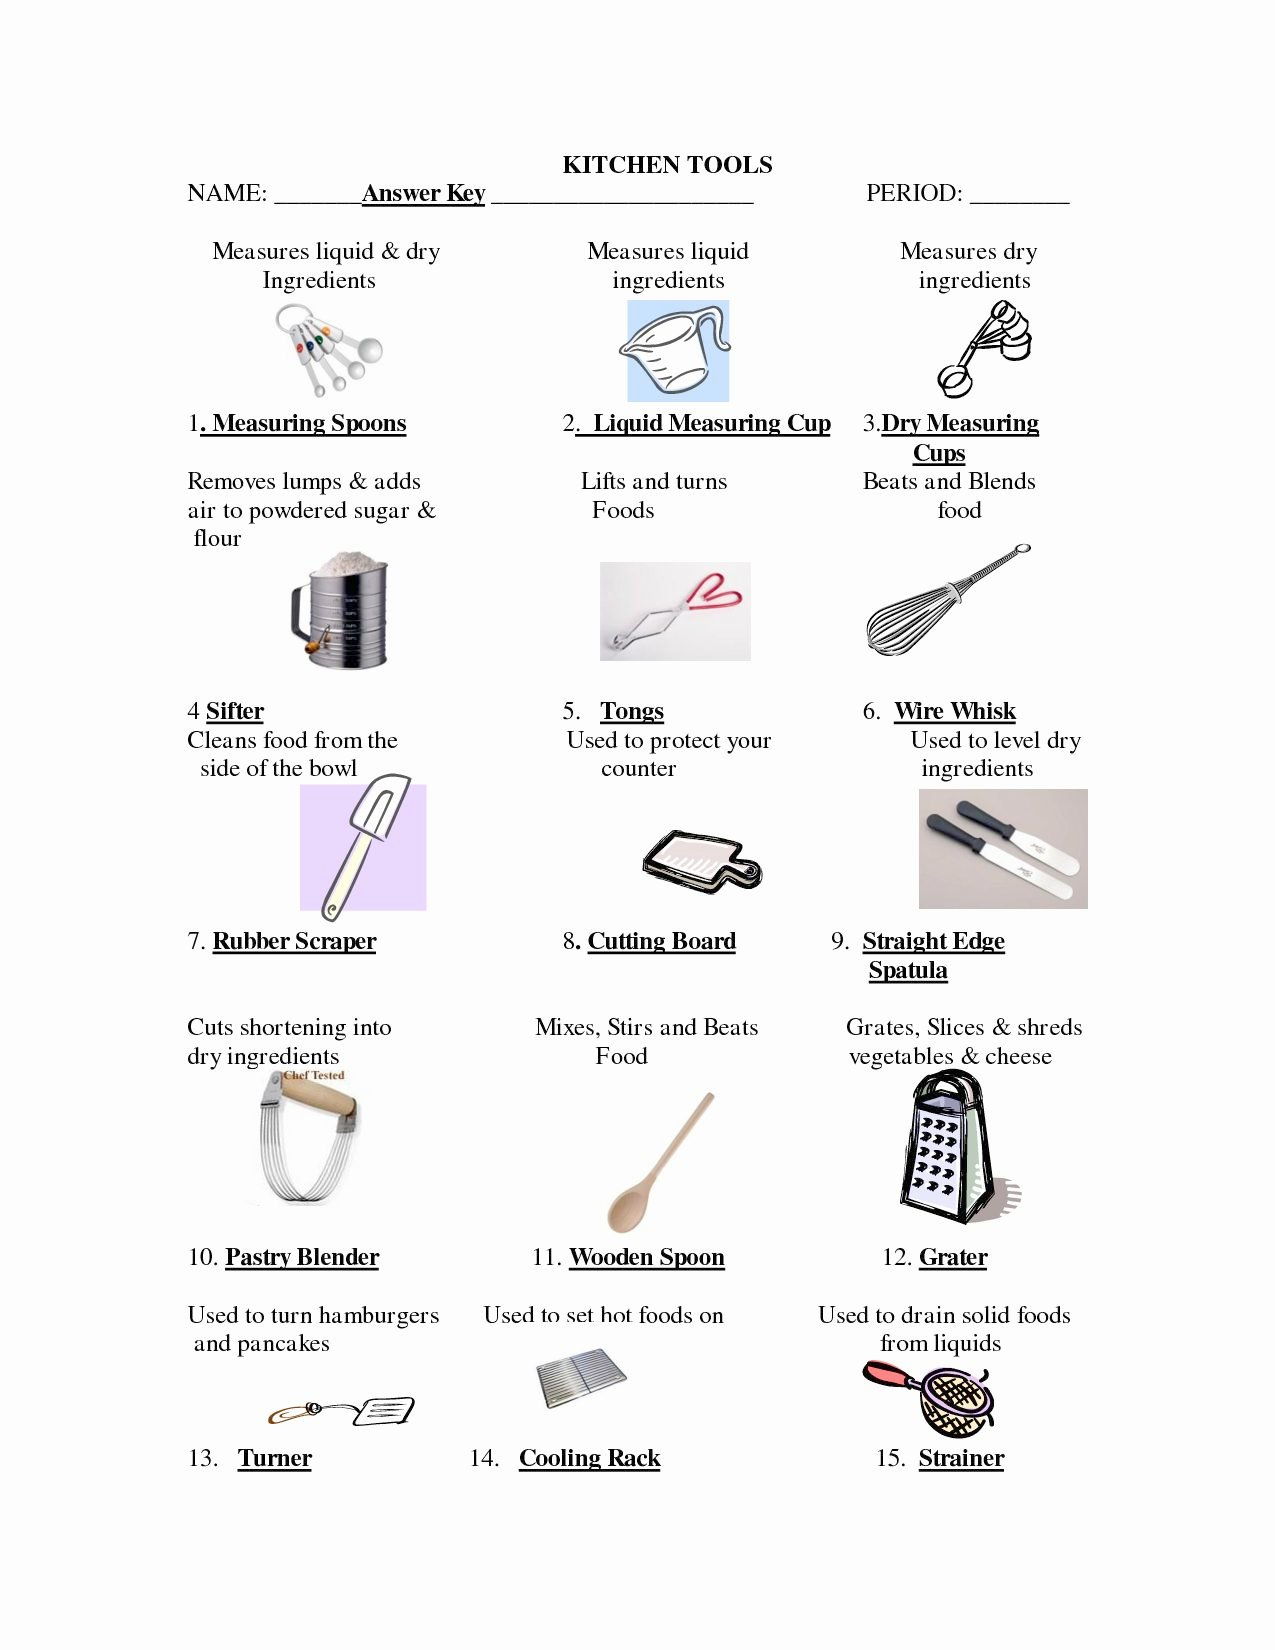 Charming List Of Kitchen Utensils And Their Uses With Pictures   Full Size Of Kitchen:attractive Kitchen Utensils And Their Uses Tools  Equipments Equipment Names Cooking ...